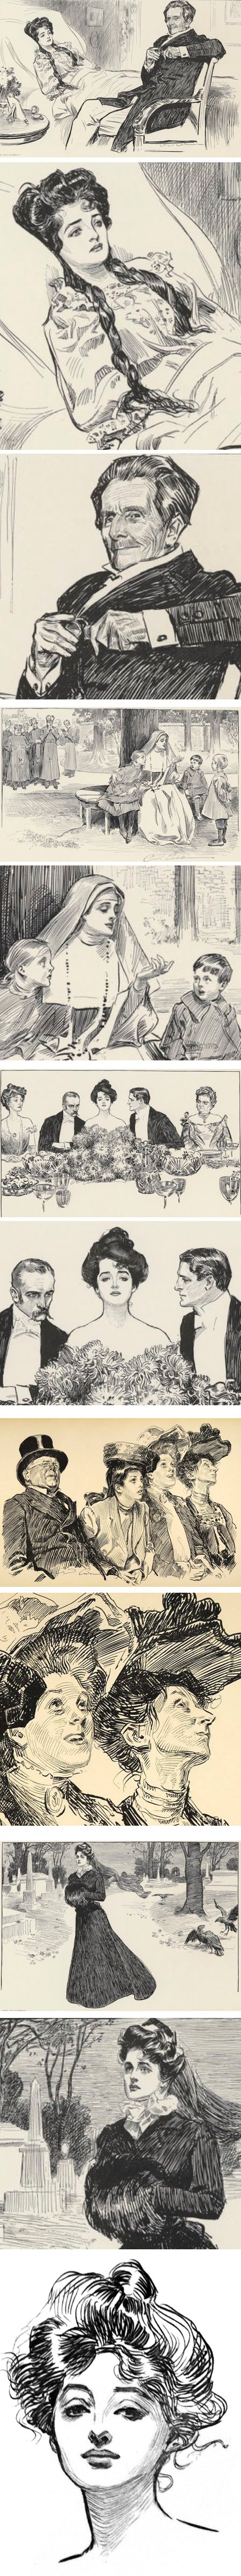 Charles Dana Gibson, pen and ink illustration